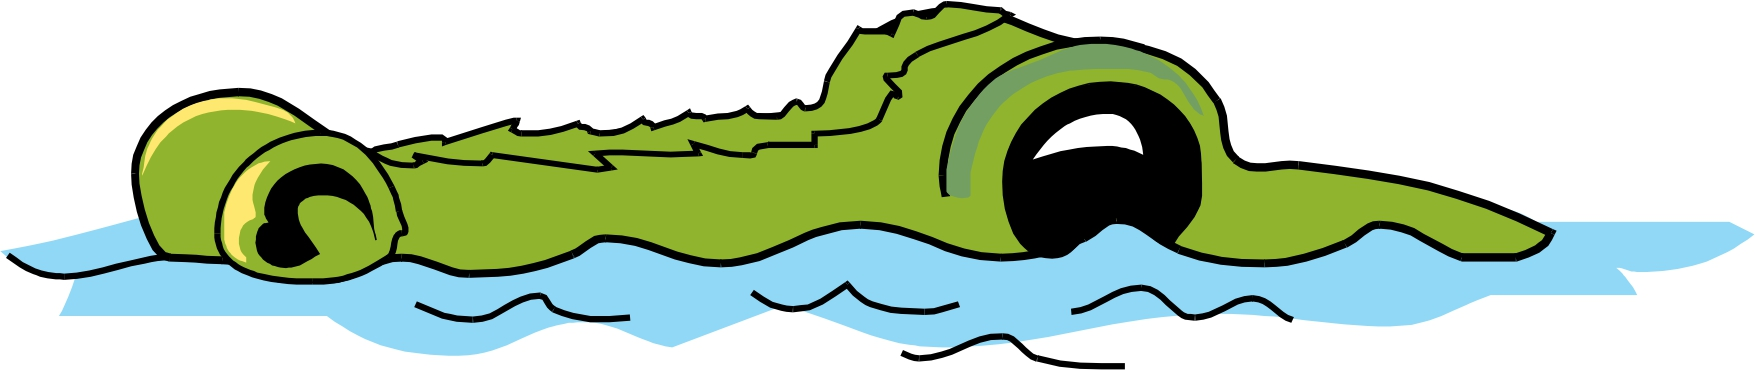 Free Free Alligator Clipart, Download Free Clip Art, Free.